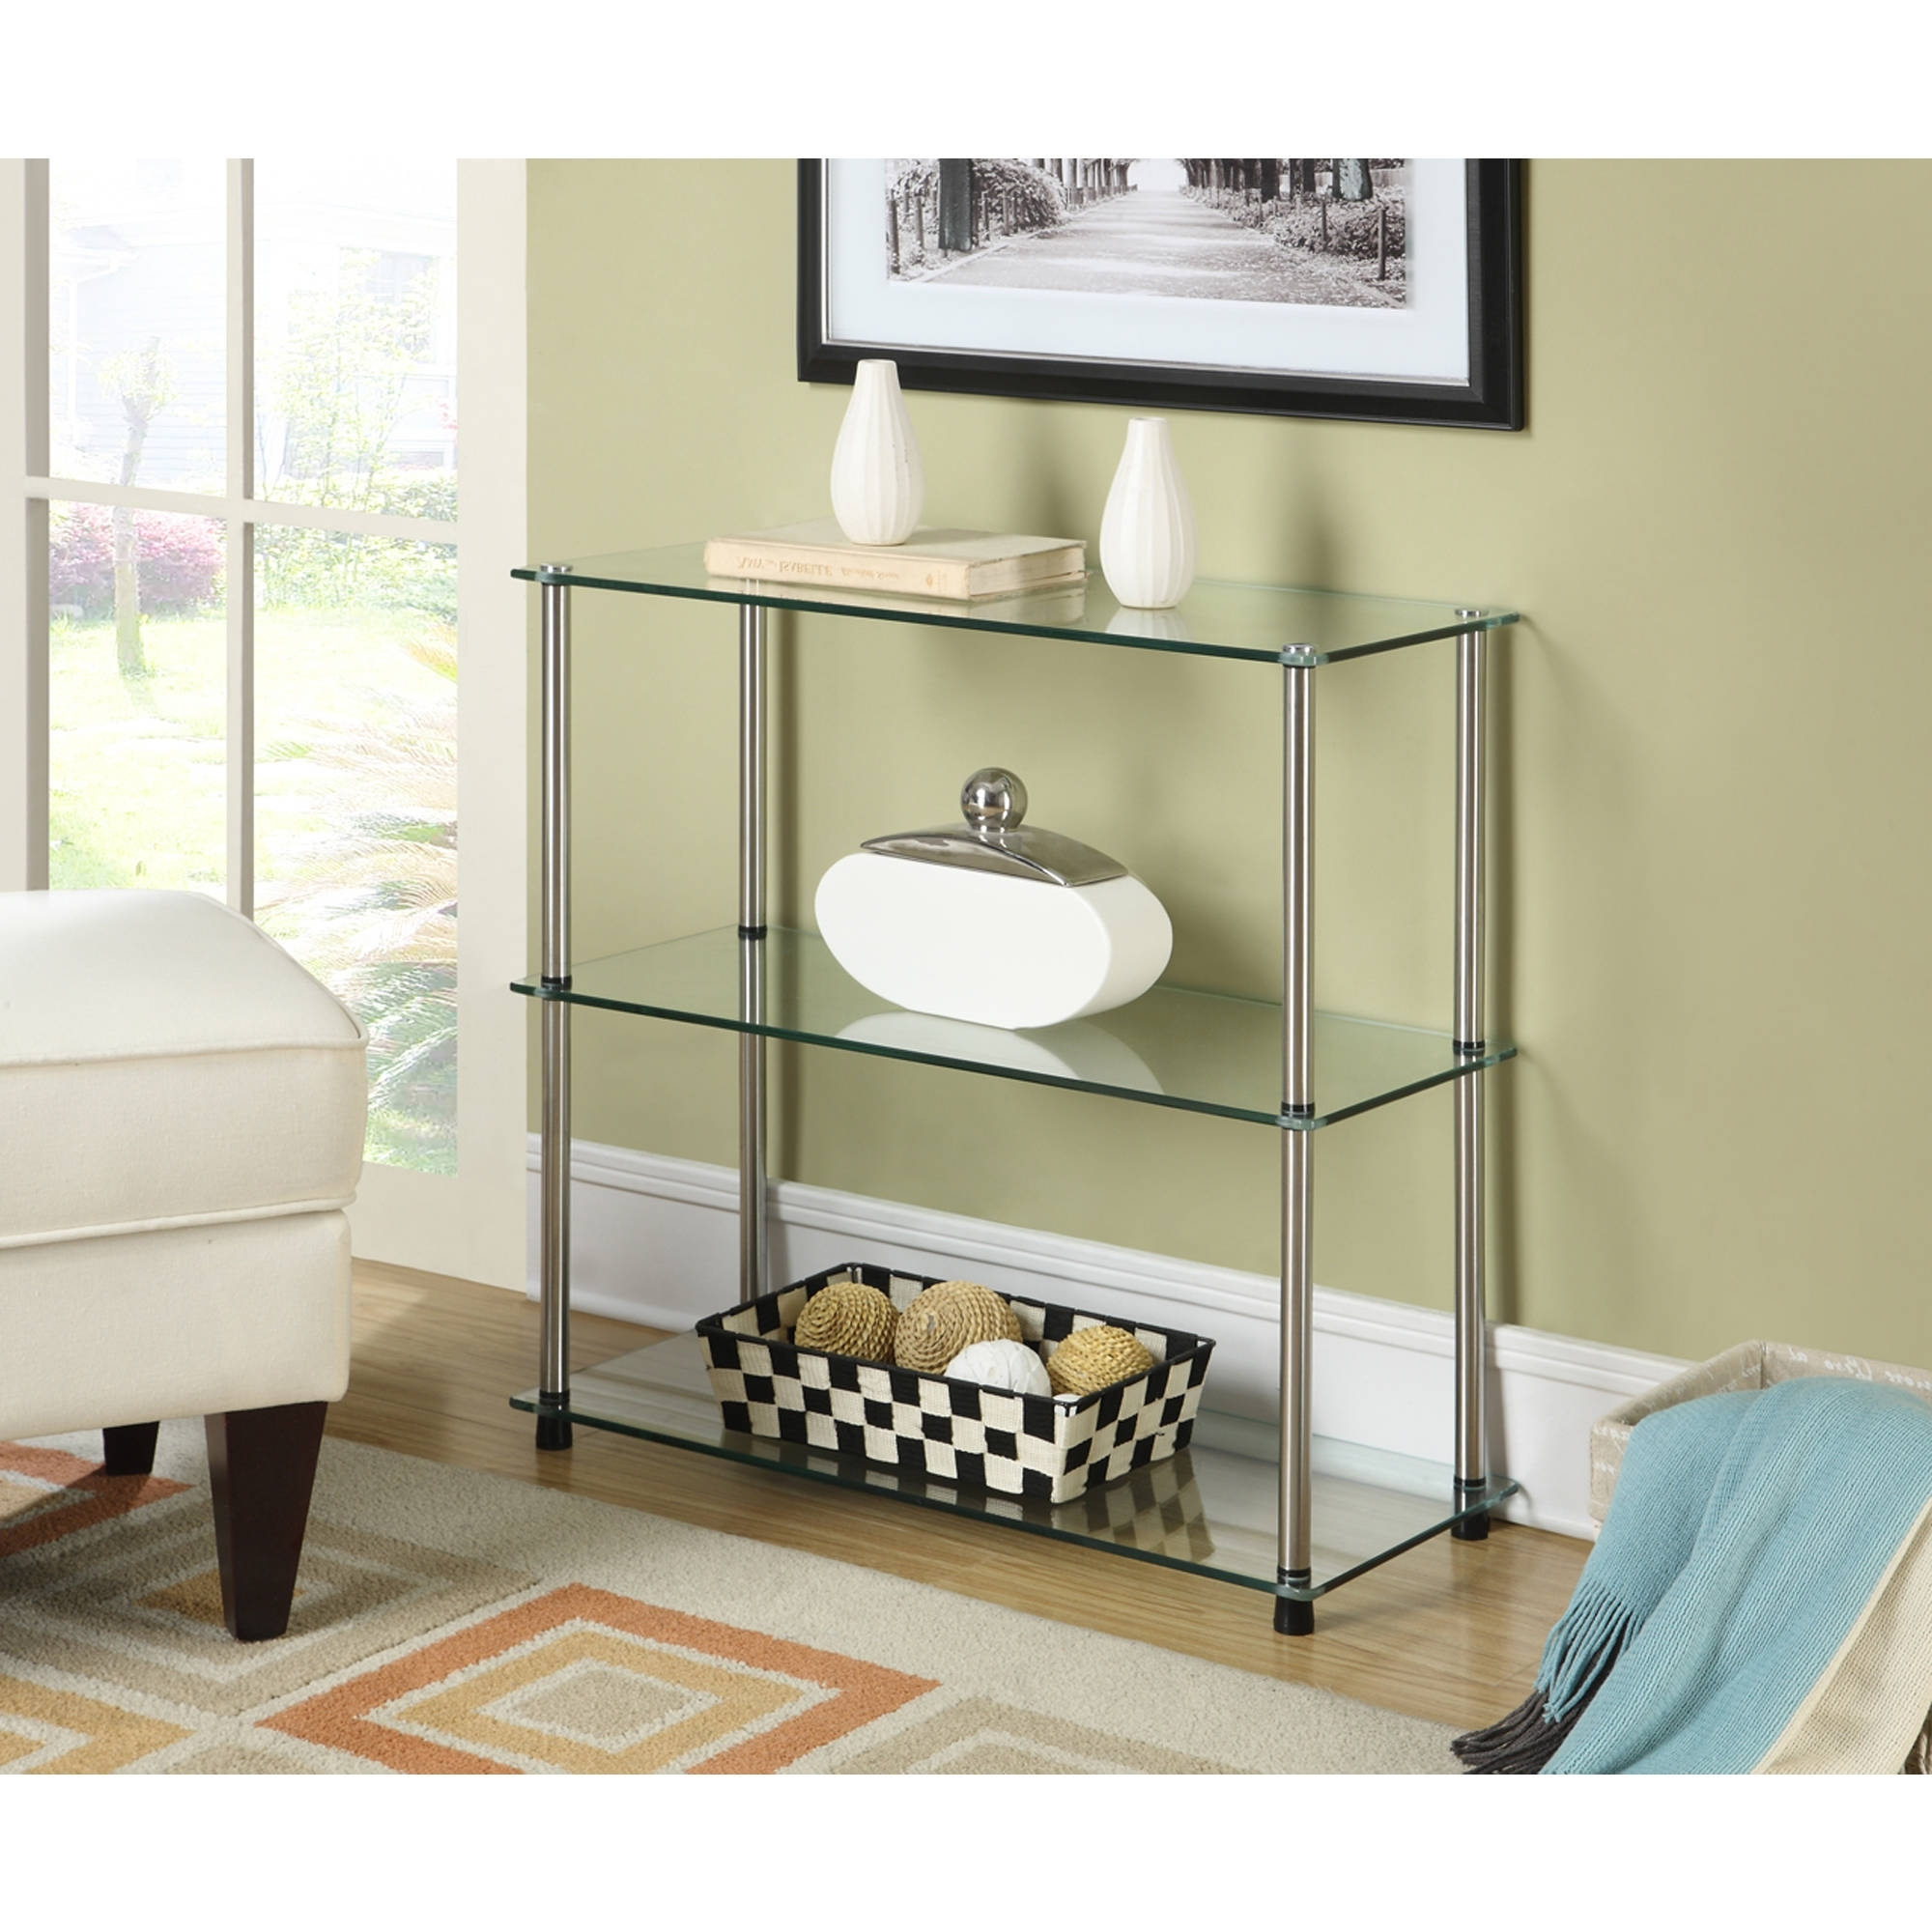 Newest Shelf Bookcase With Glass Doors Sauder White Room Essentials With Regard To Room Essentials 3 Shelf Bookcases (View 9 of 15)